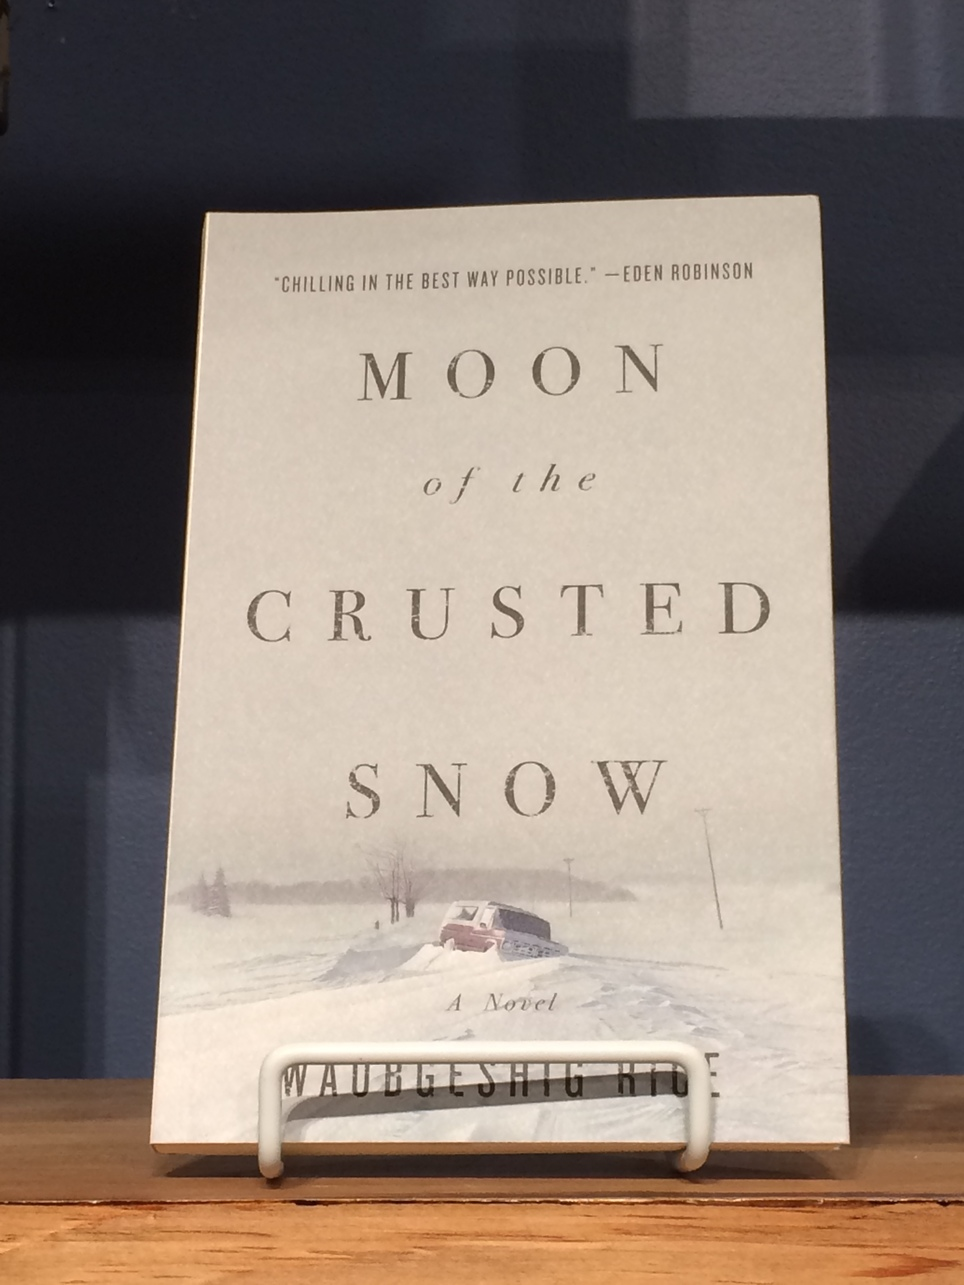 Strange Futures Book Club : Moon of the Crusted Snow by Waubgeshig Rice